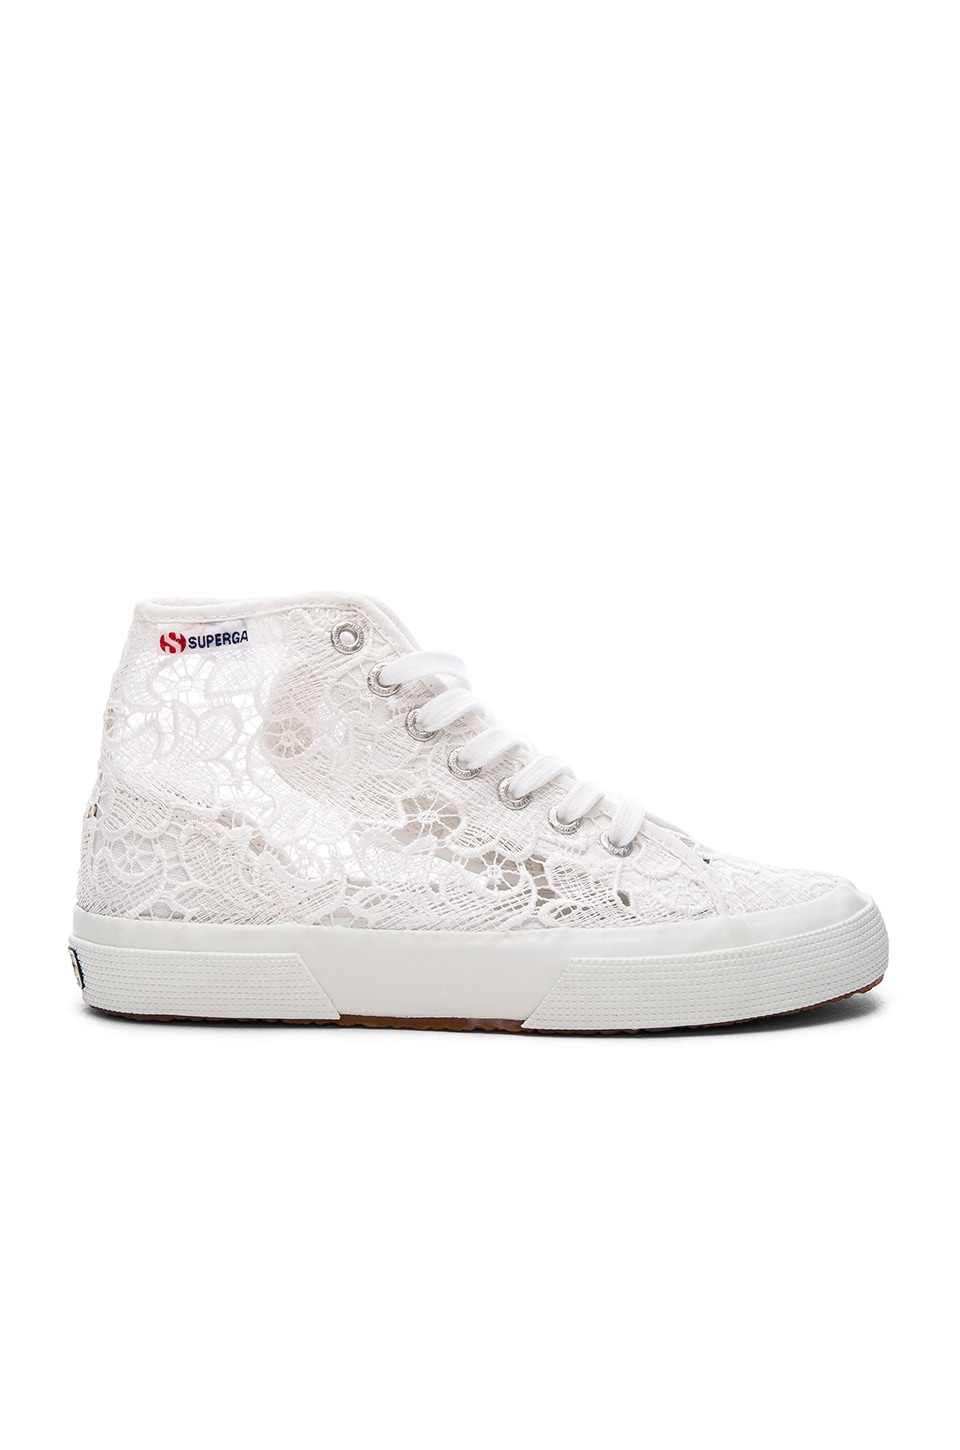 Superga 2750 Cot Macrame High Top Sneaker in White